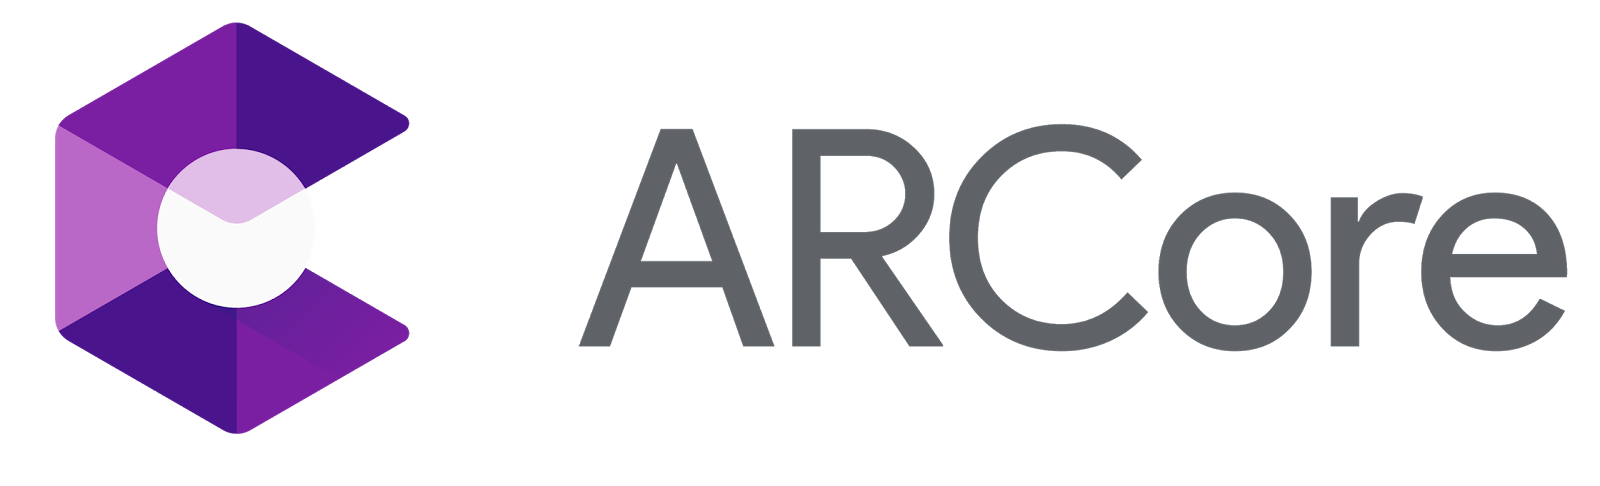 - logo ARCore lockup Horizontal - Announcing ARCore 1.0 and new updates to Google Lens